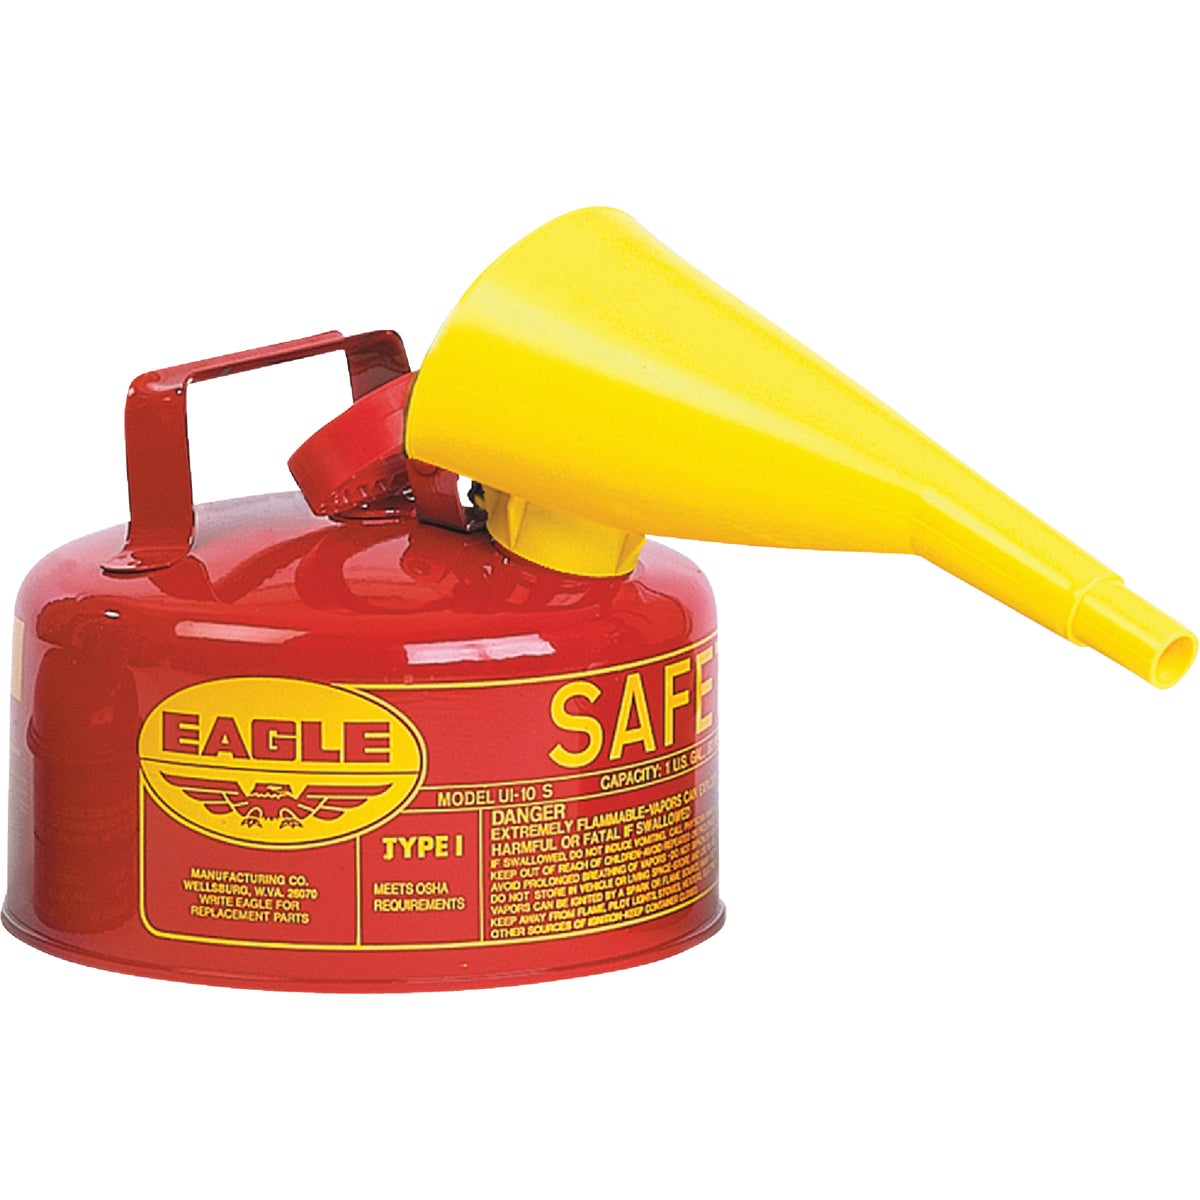 RED 1GAL GAS SAFETY CAN - UI-10-FS by Eagle Mfg Co